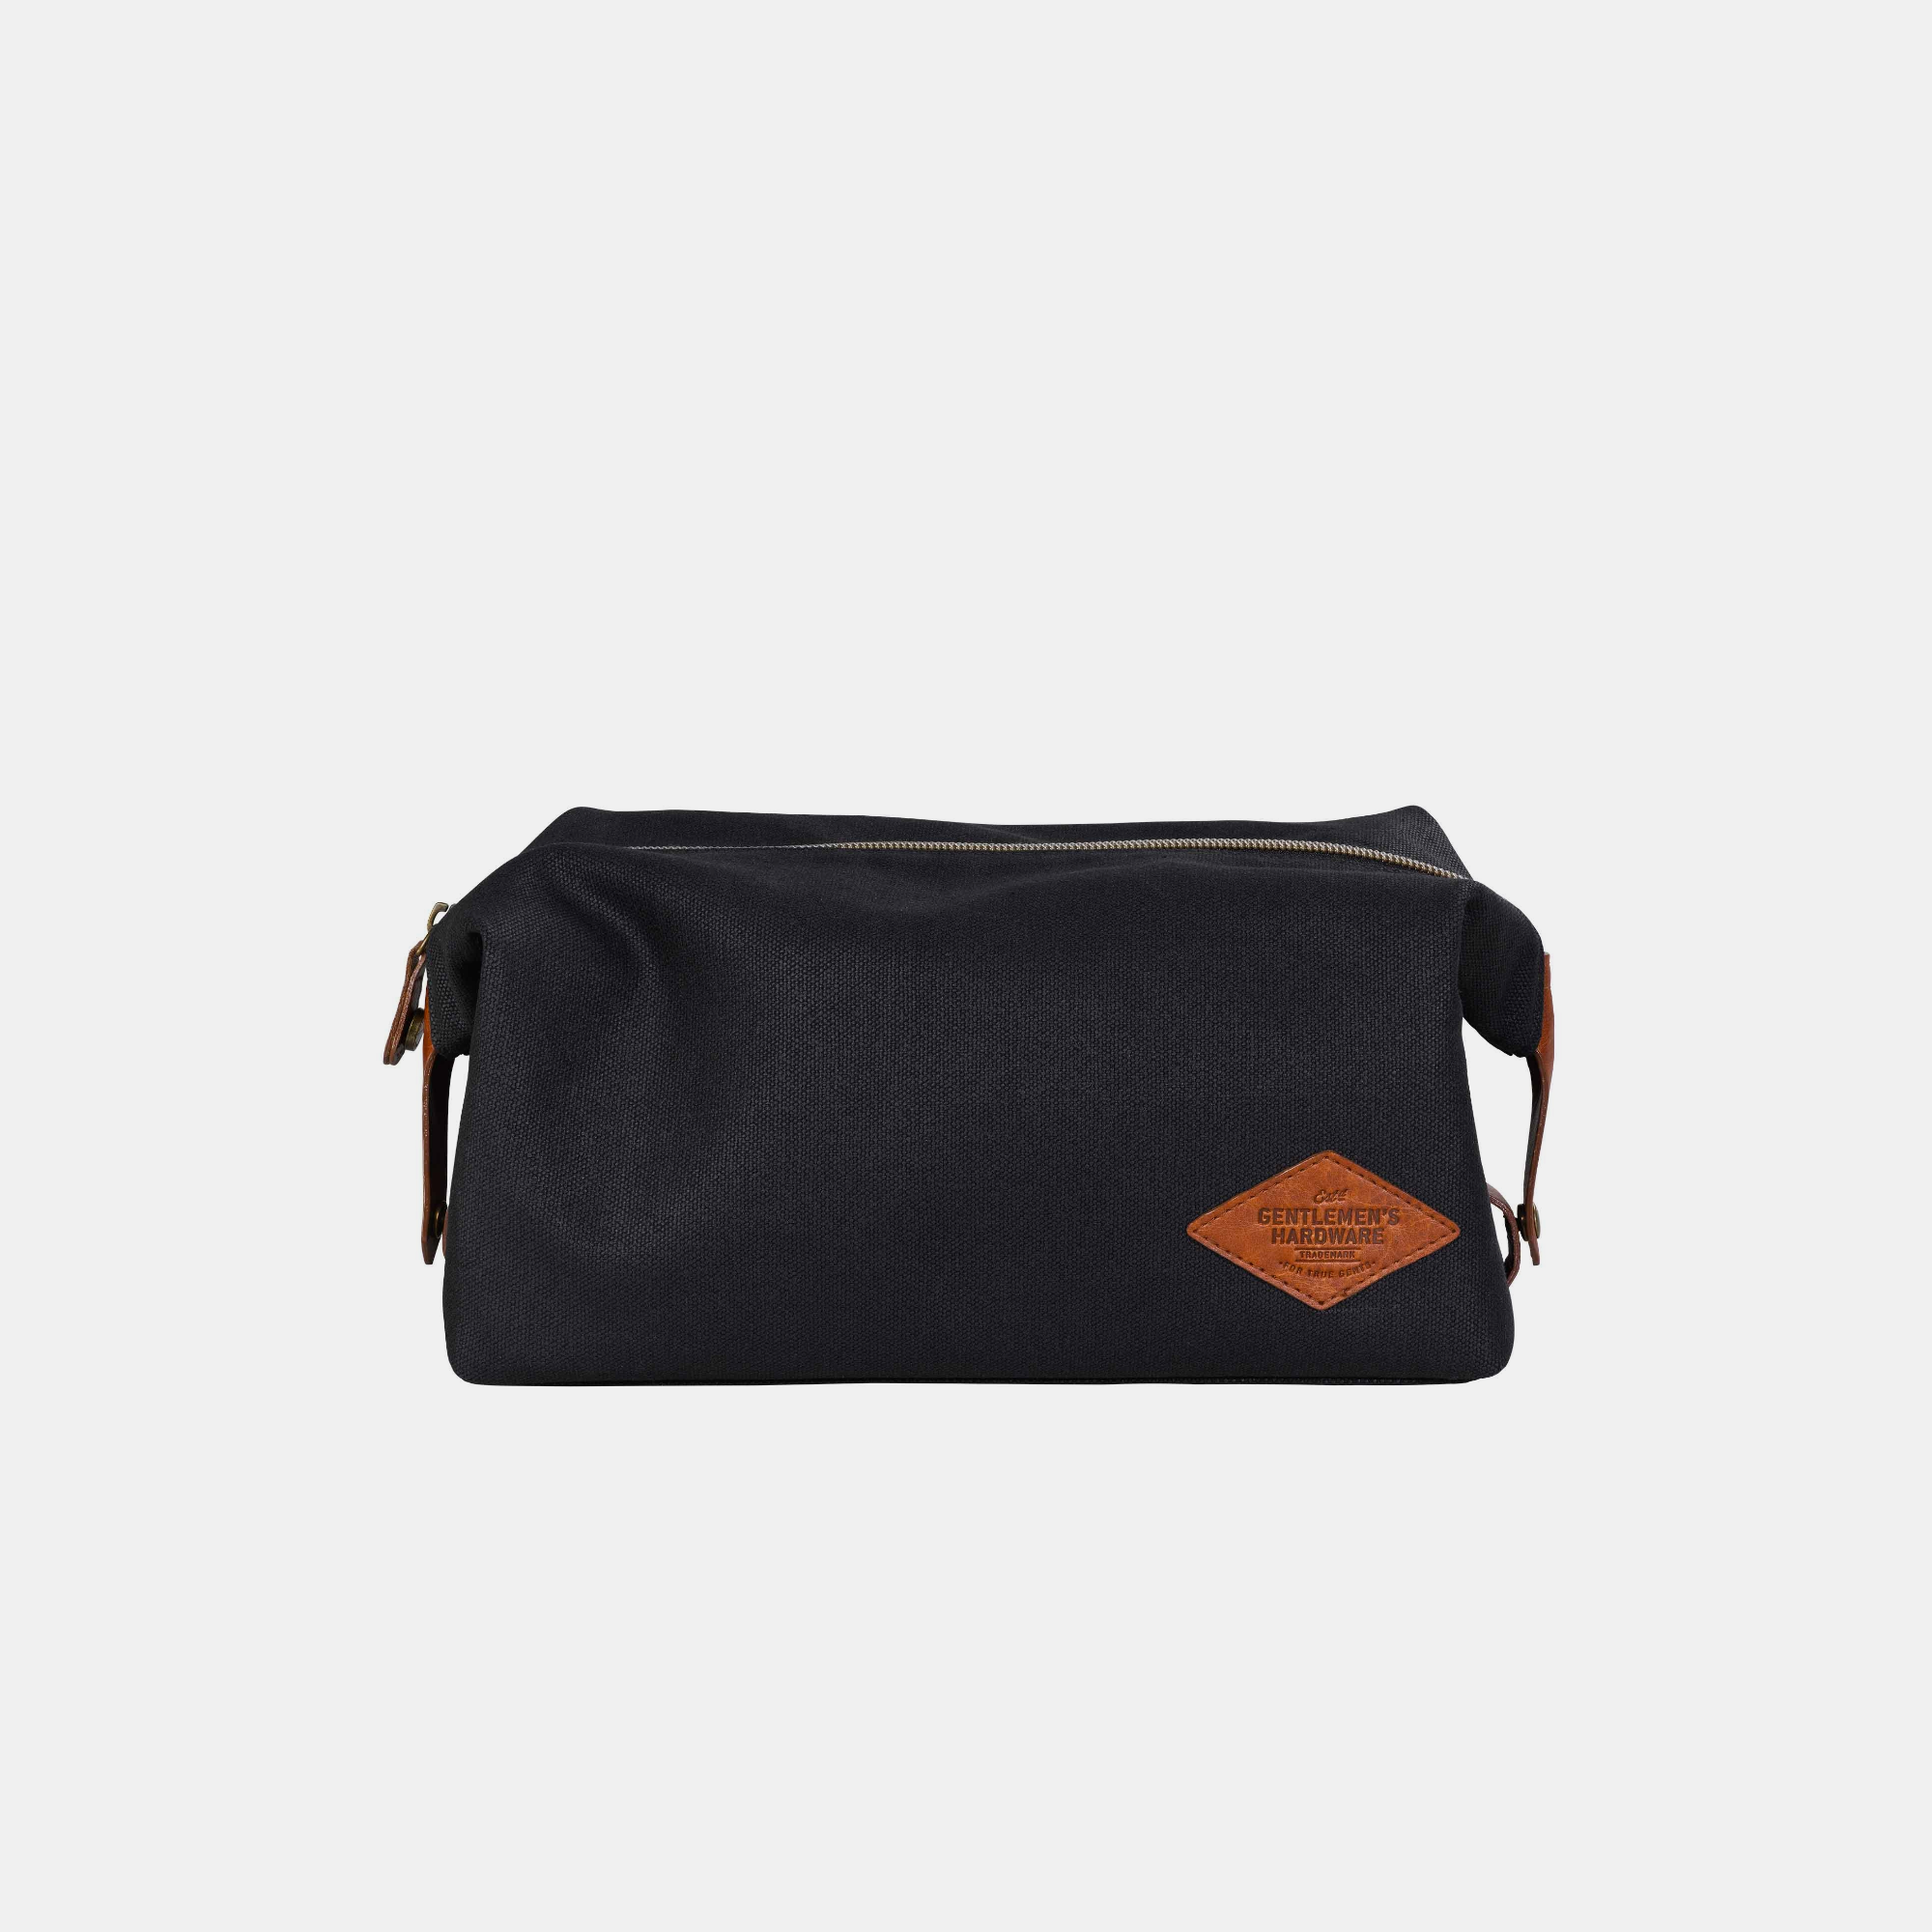 Gentlemen's Hardware Waxed wanvas wash bag